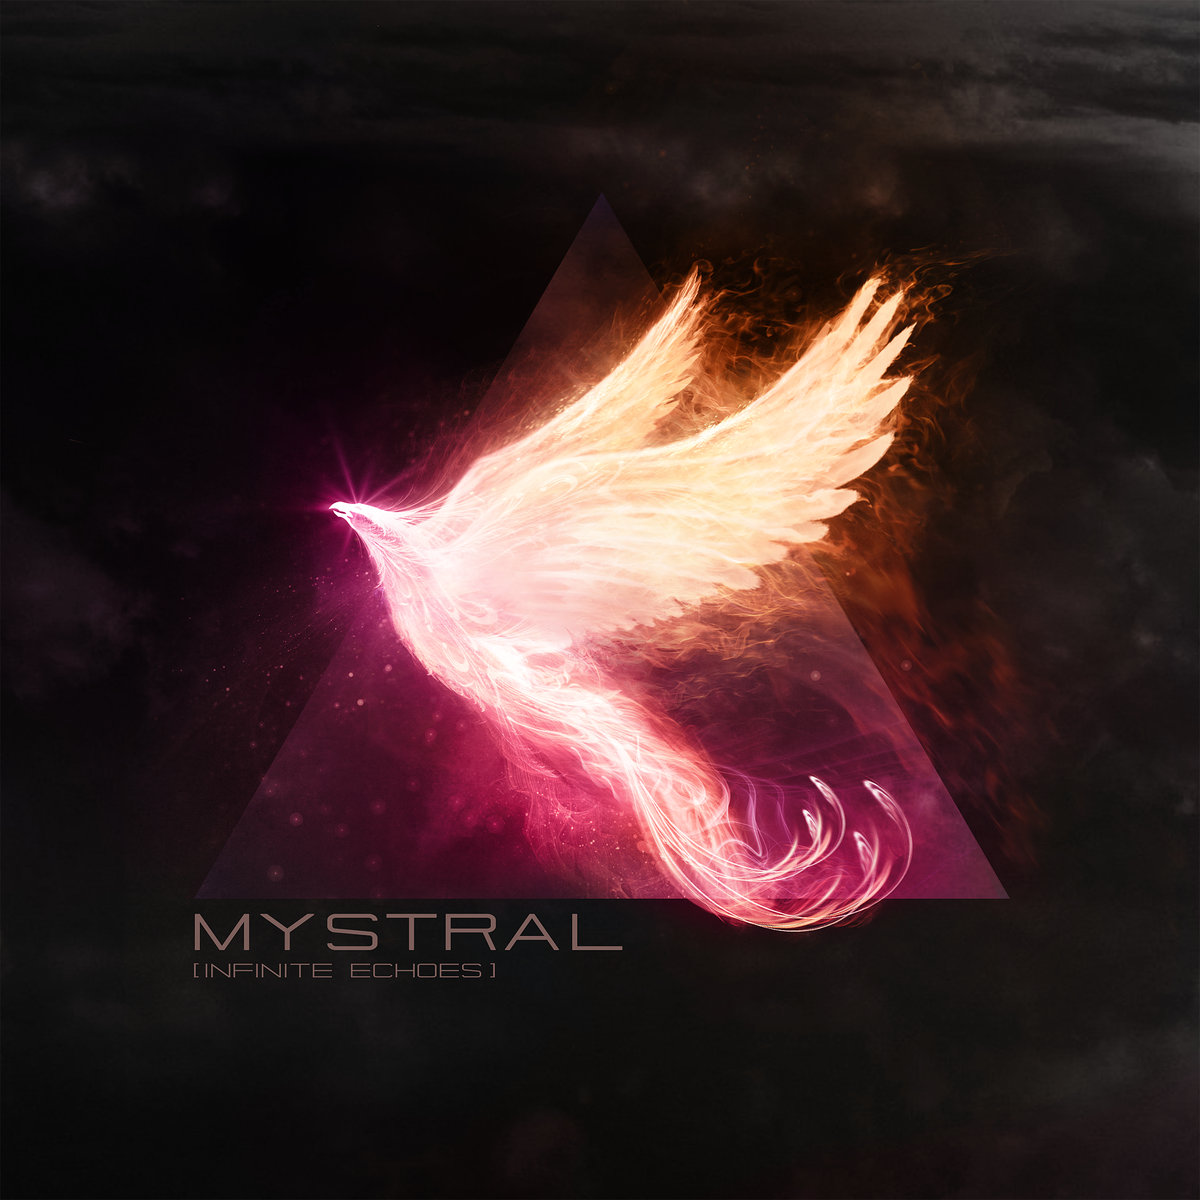 Mystral - Audio Illusion @ 'Infinite Echoes' album ()